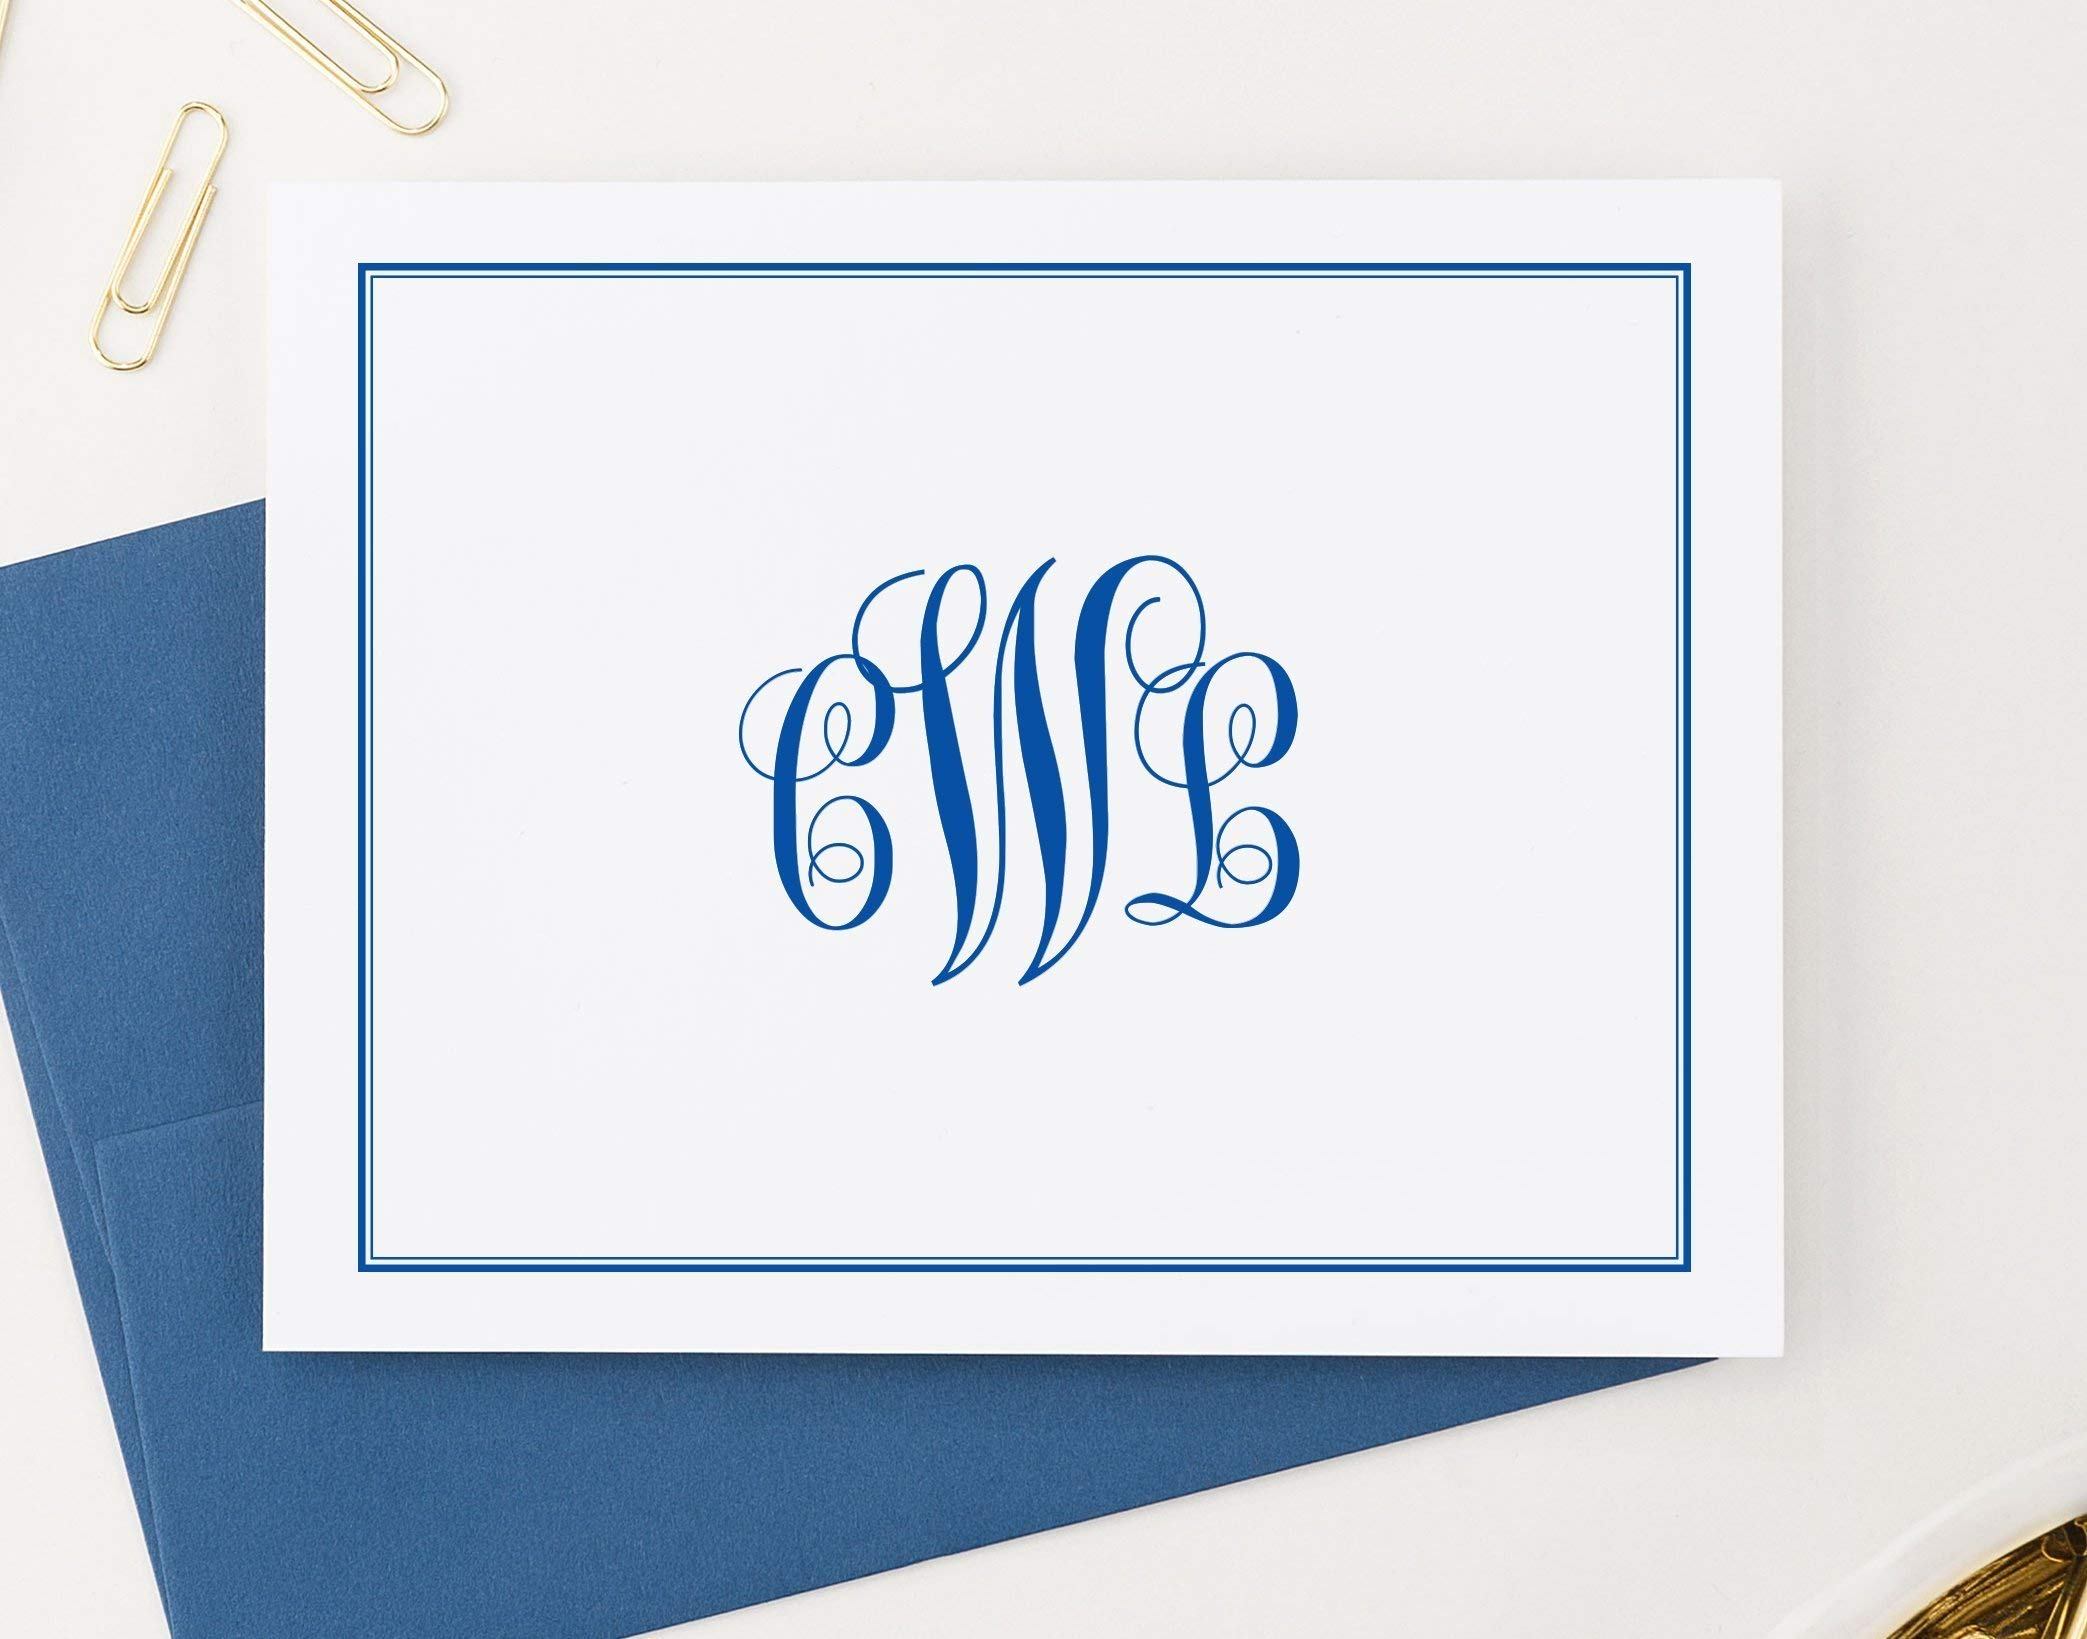 Classic Monogram Stationary Set FOLDED NOTE CARDS, Personalized Stationary Set, Personalized Monogram Stationery Set, Your Choice of Colors, Set of 10 folded note cards and envelopes